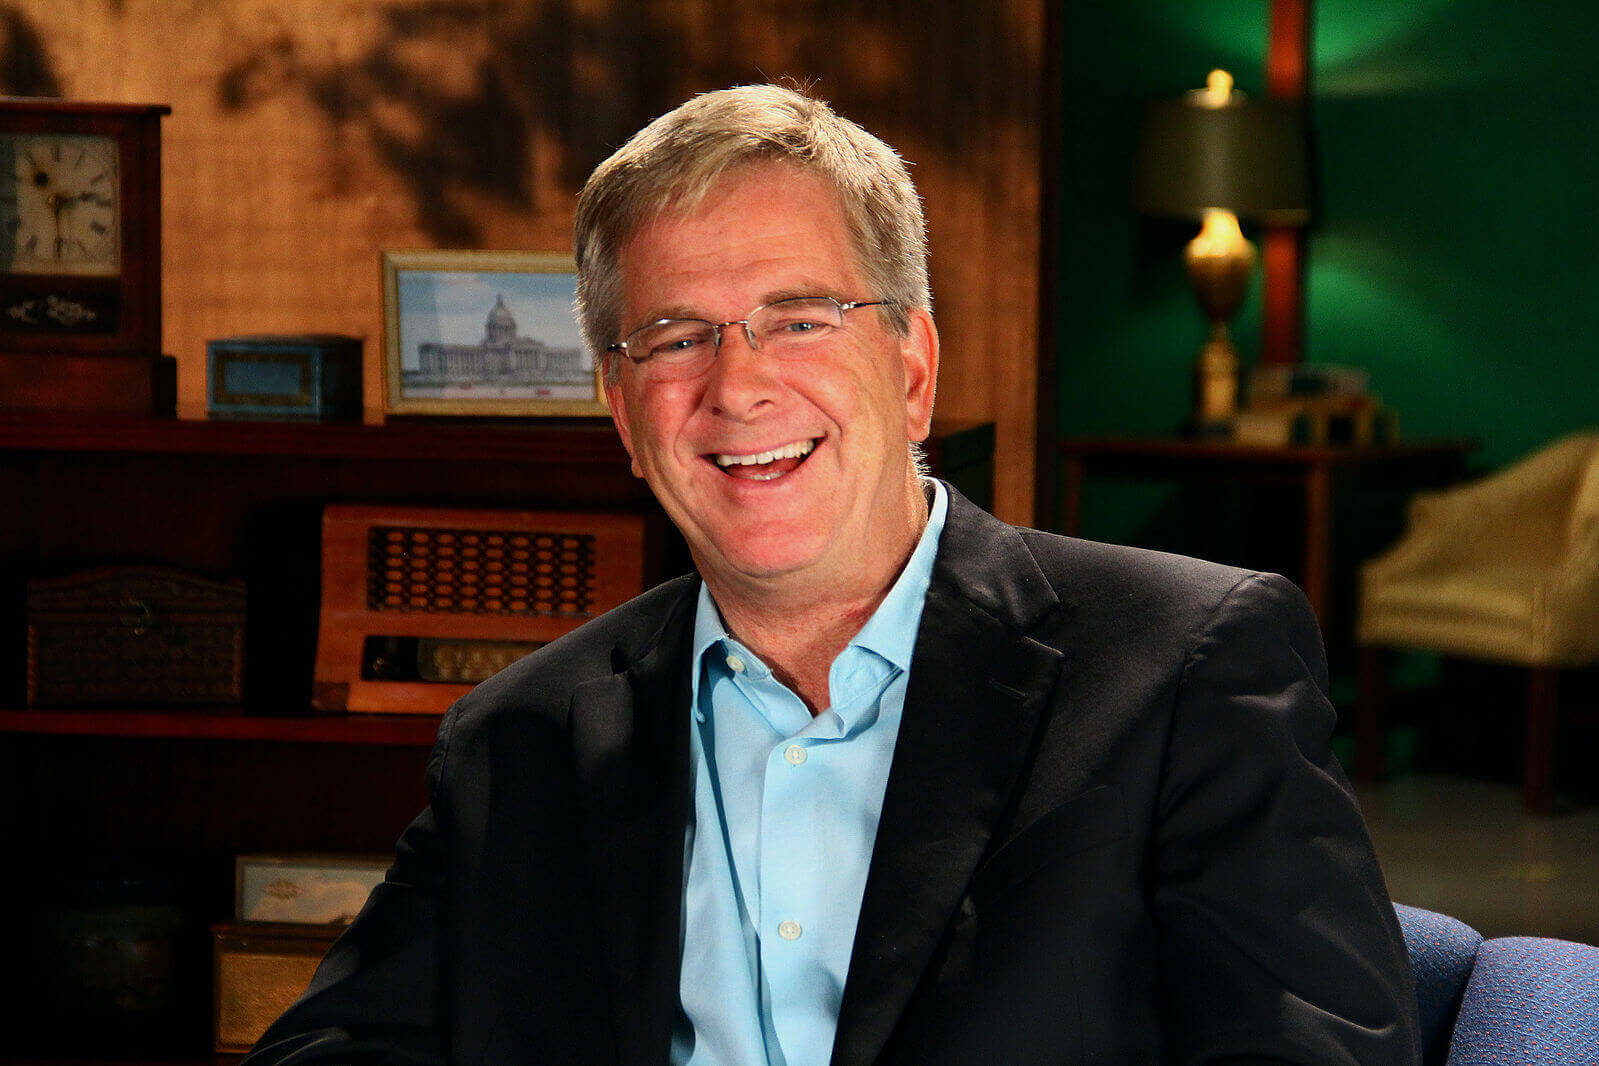 USA author Rick Steves